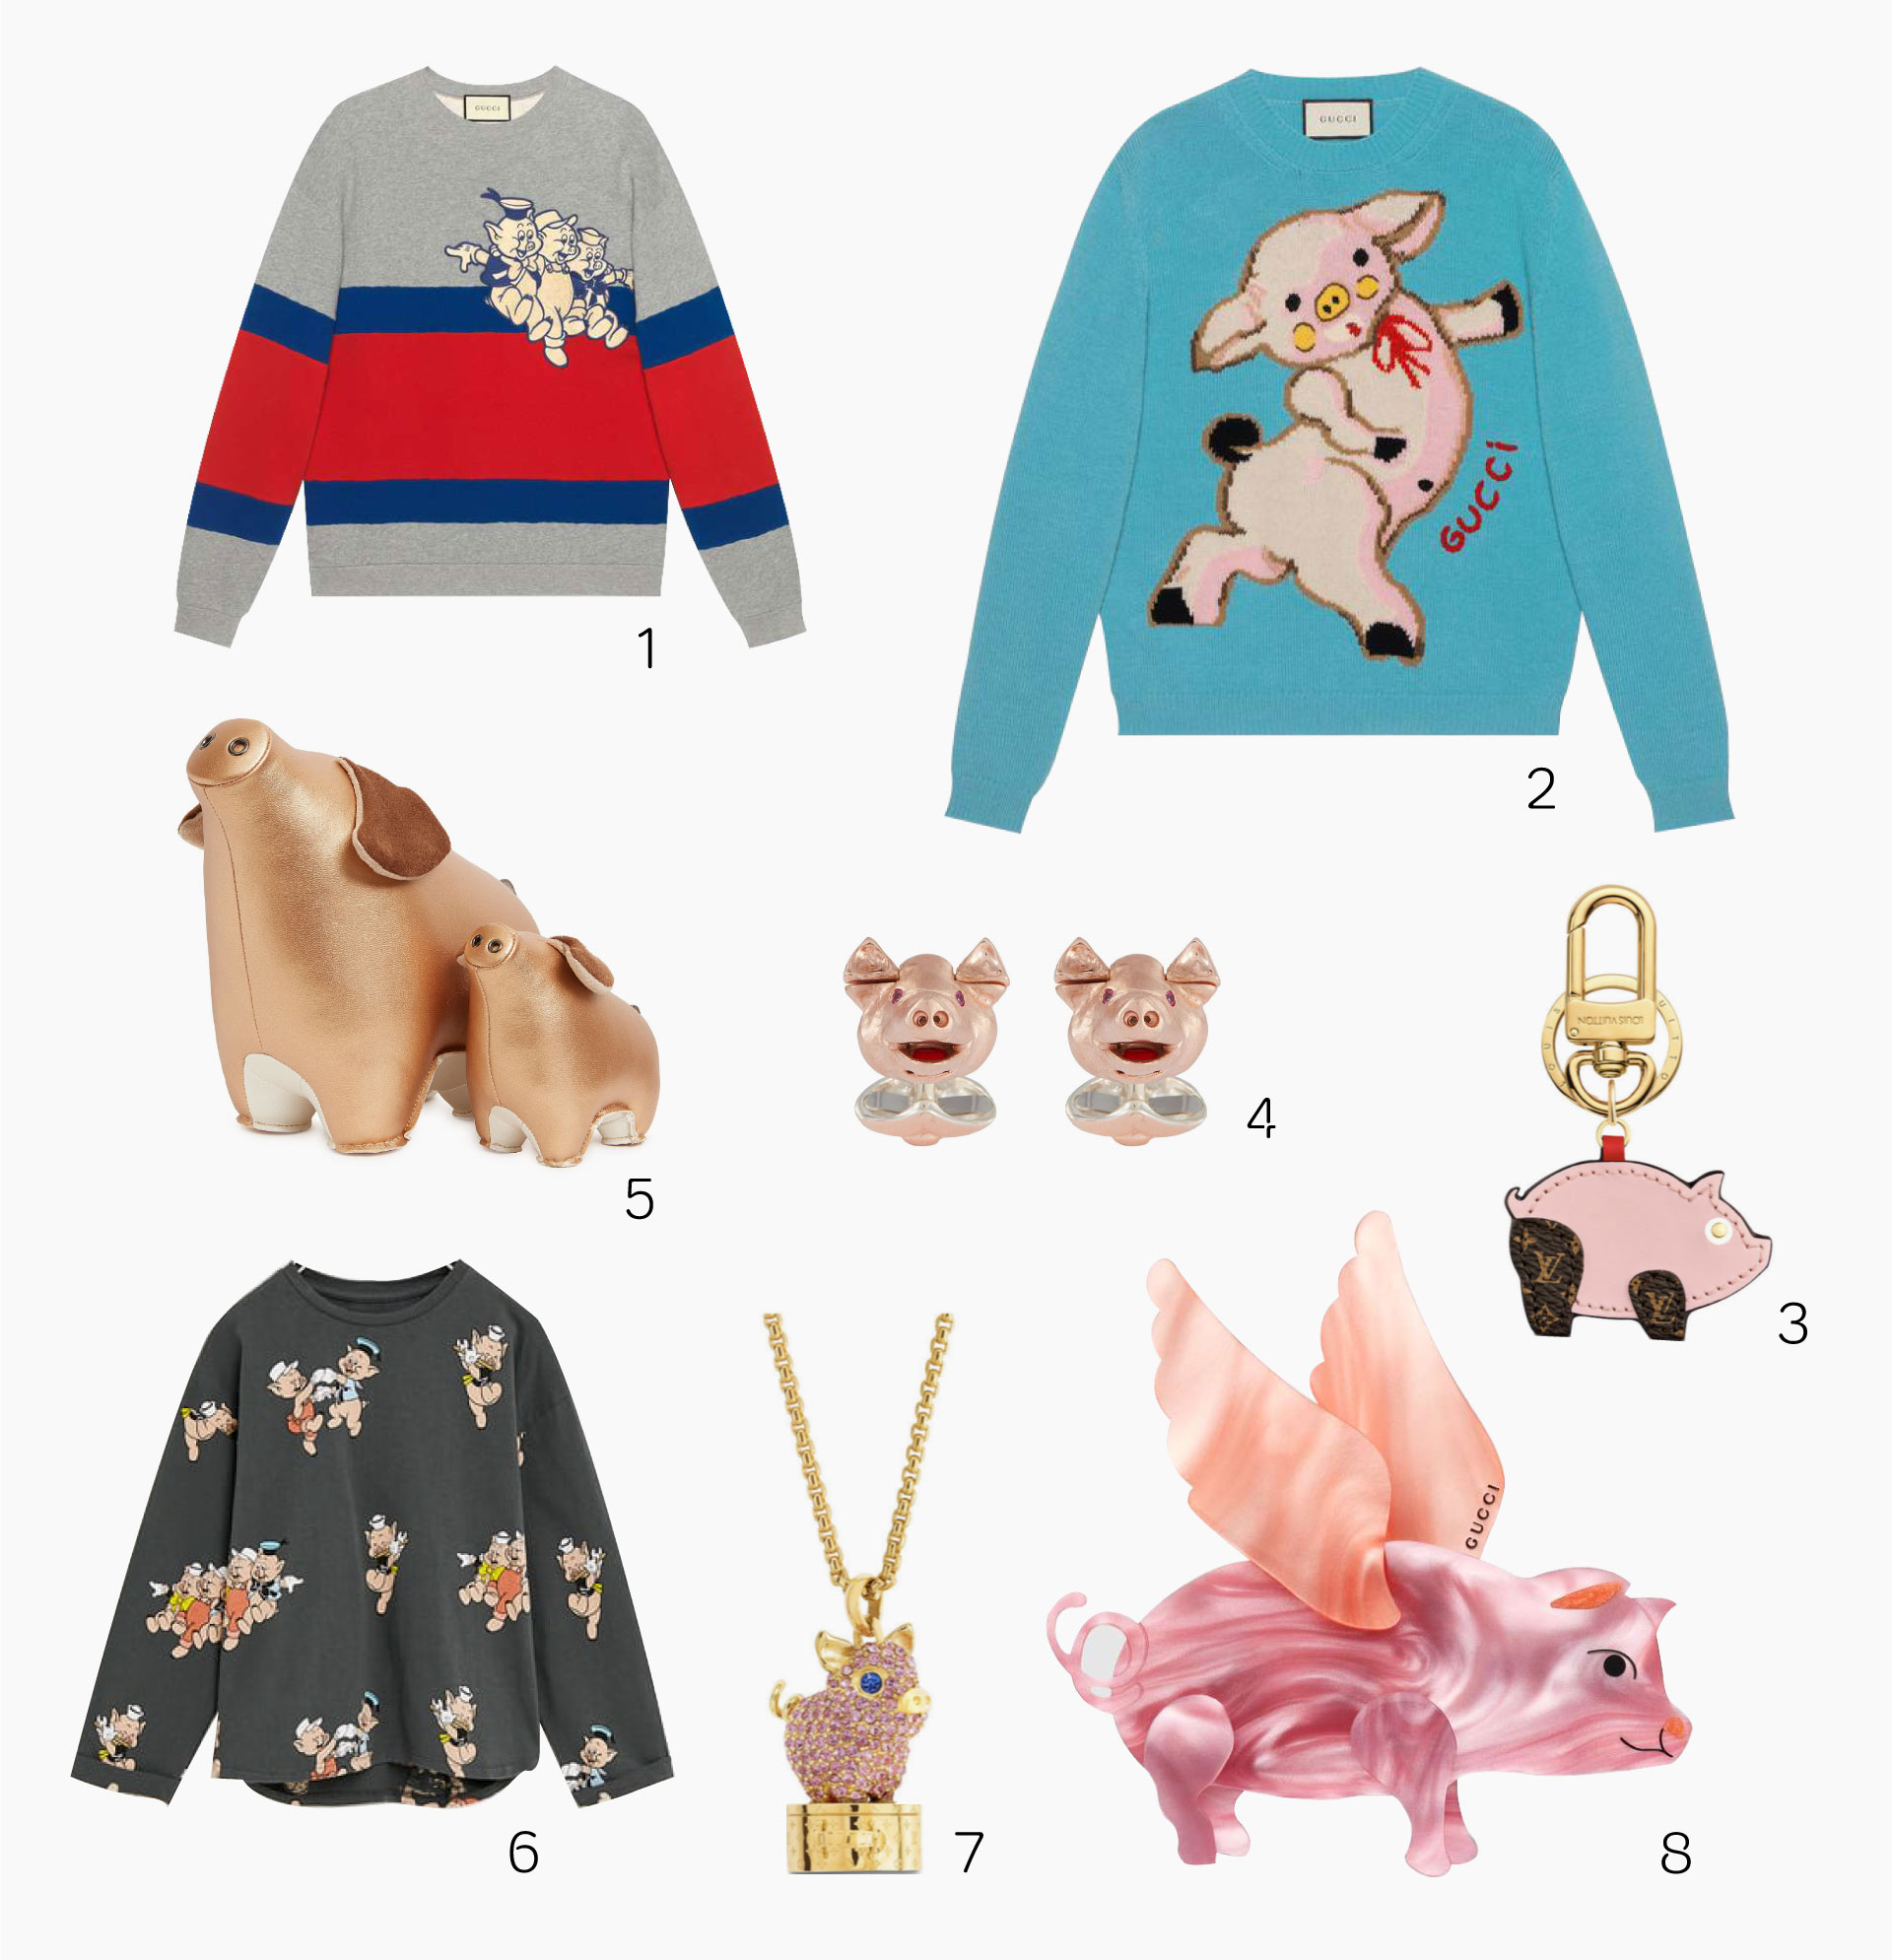 The best Year of the Pig-inspired fashion pieces currently available at Pacific Place